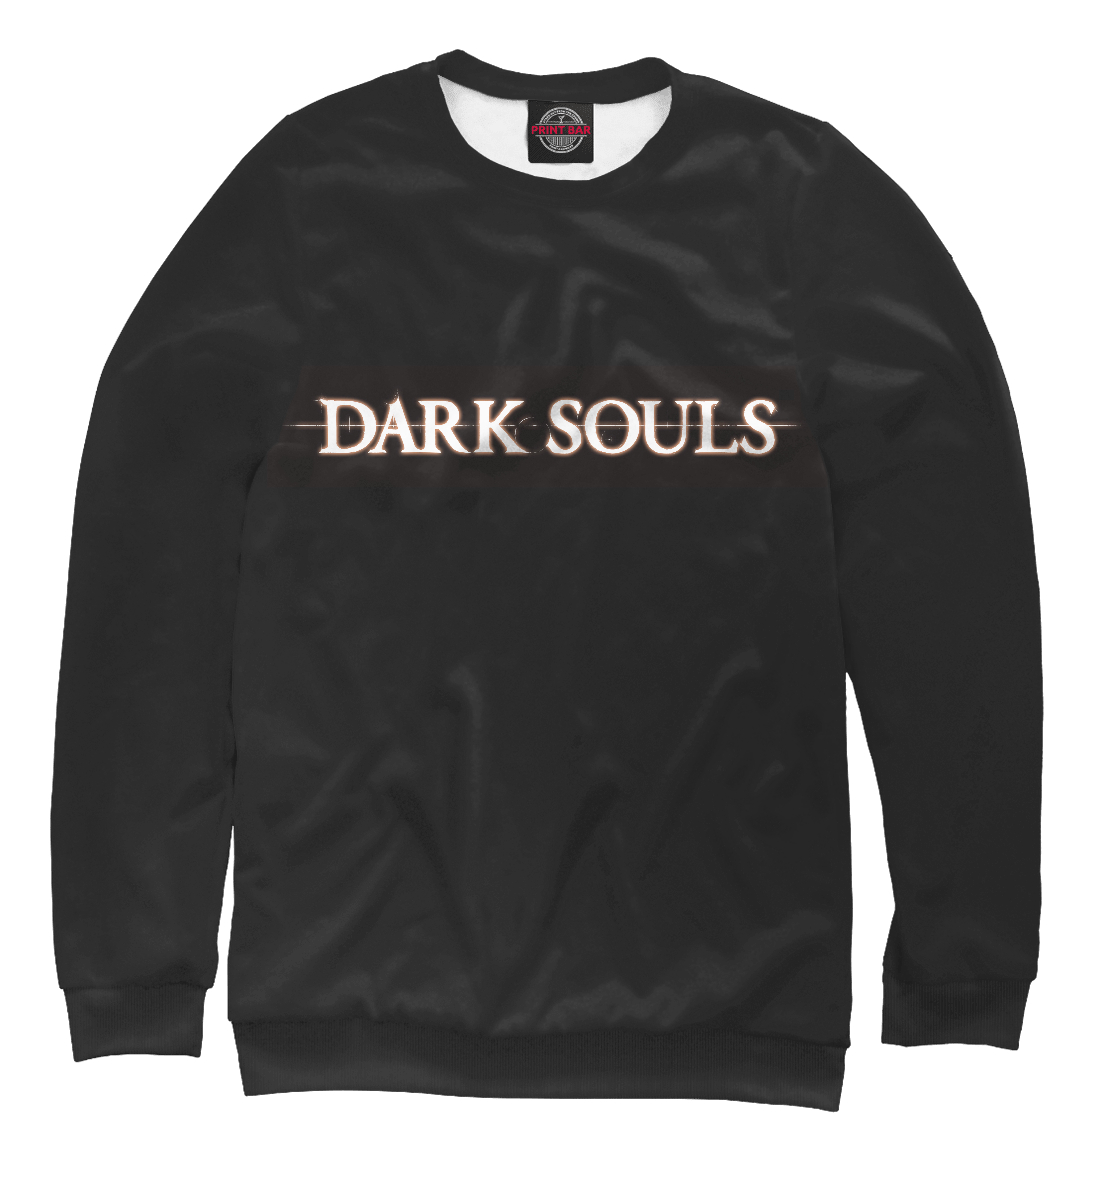 Купить Dark Souls, Printbar, Свитшоты, DKS-976083-swi-2